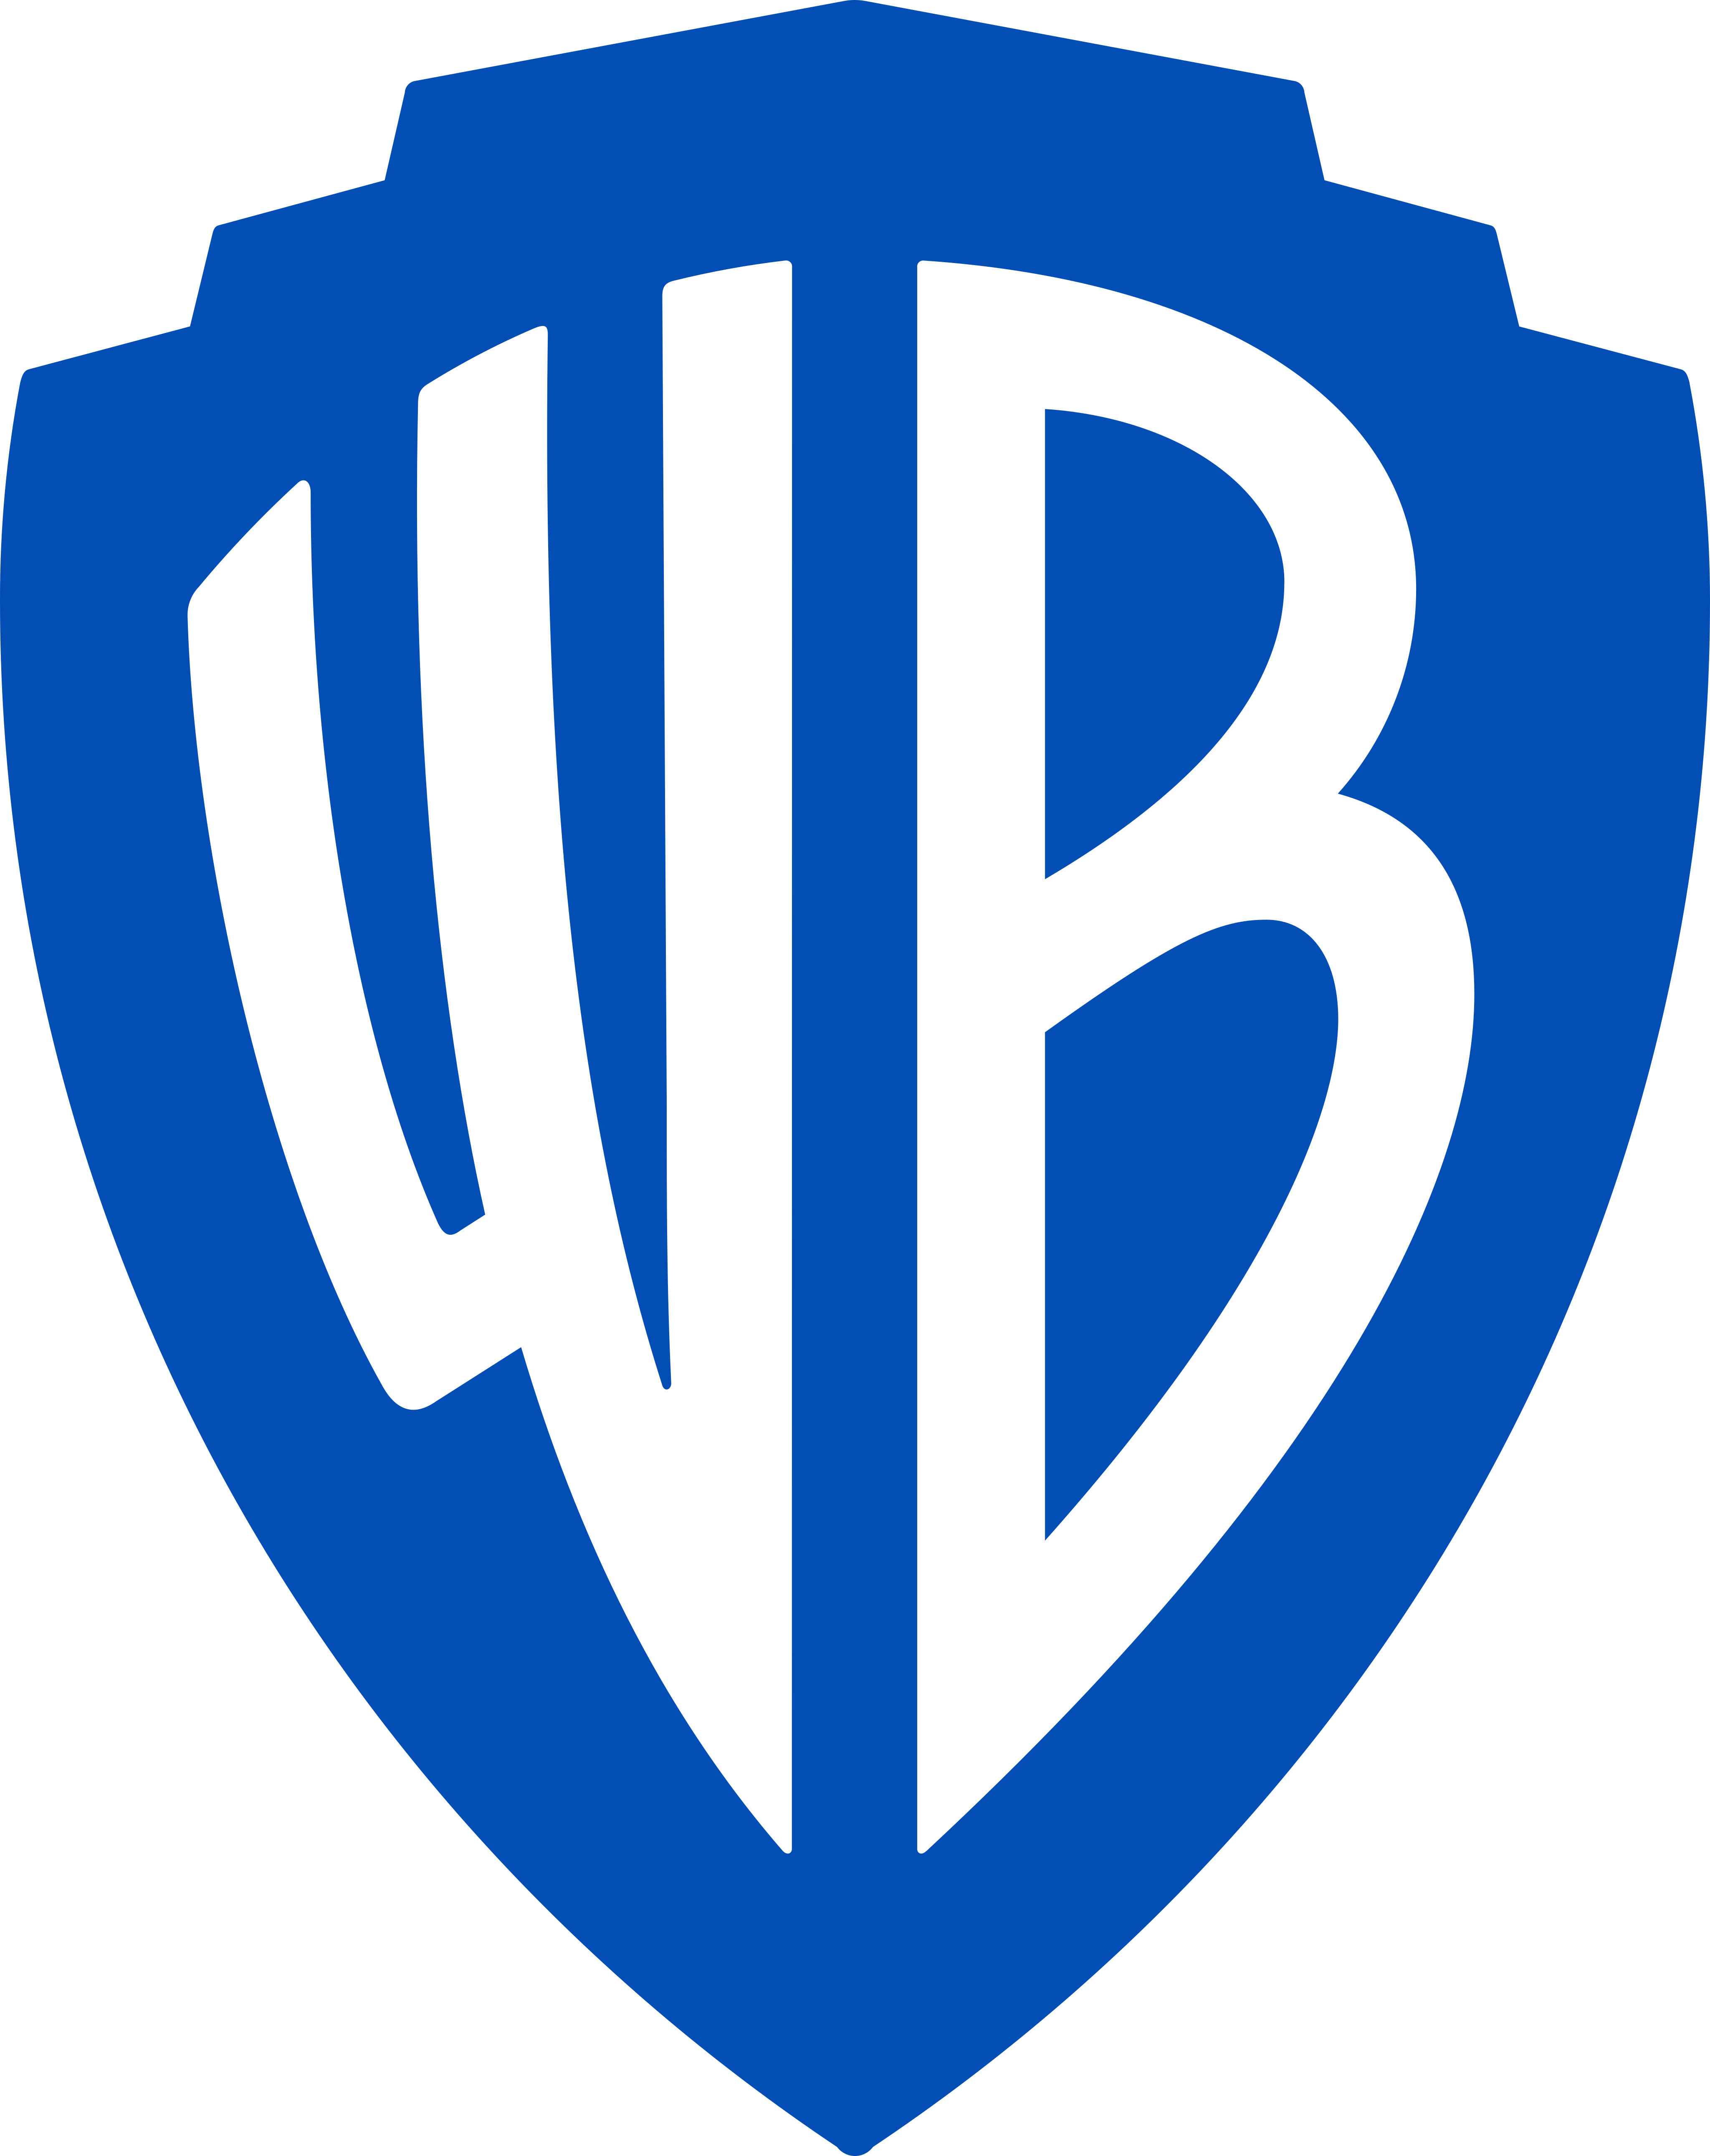 warner bros logo 1 - Warner Bros Logo